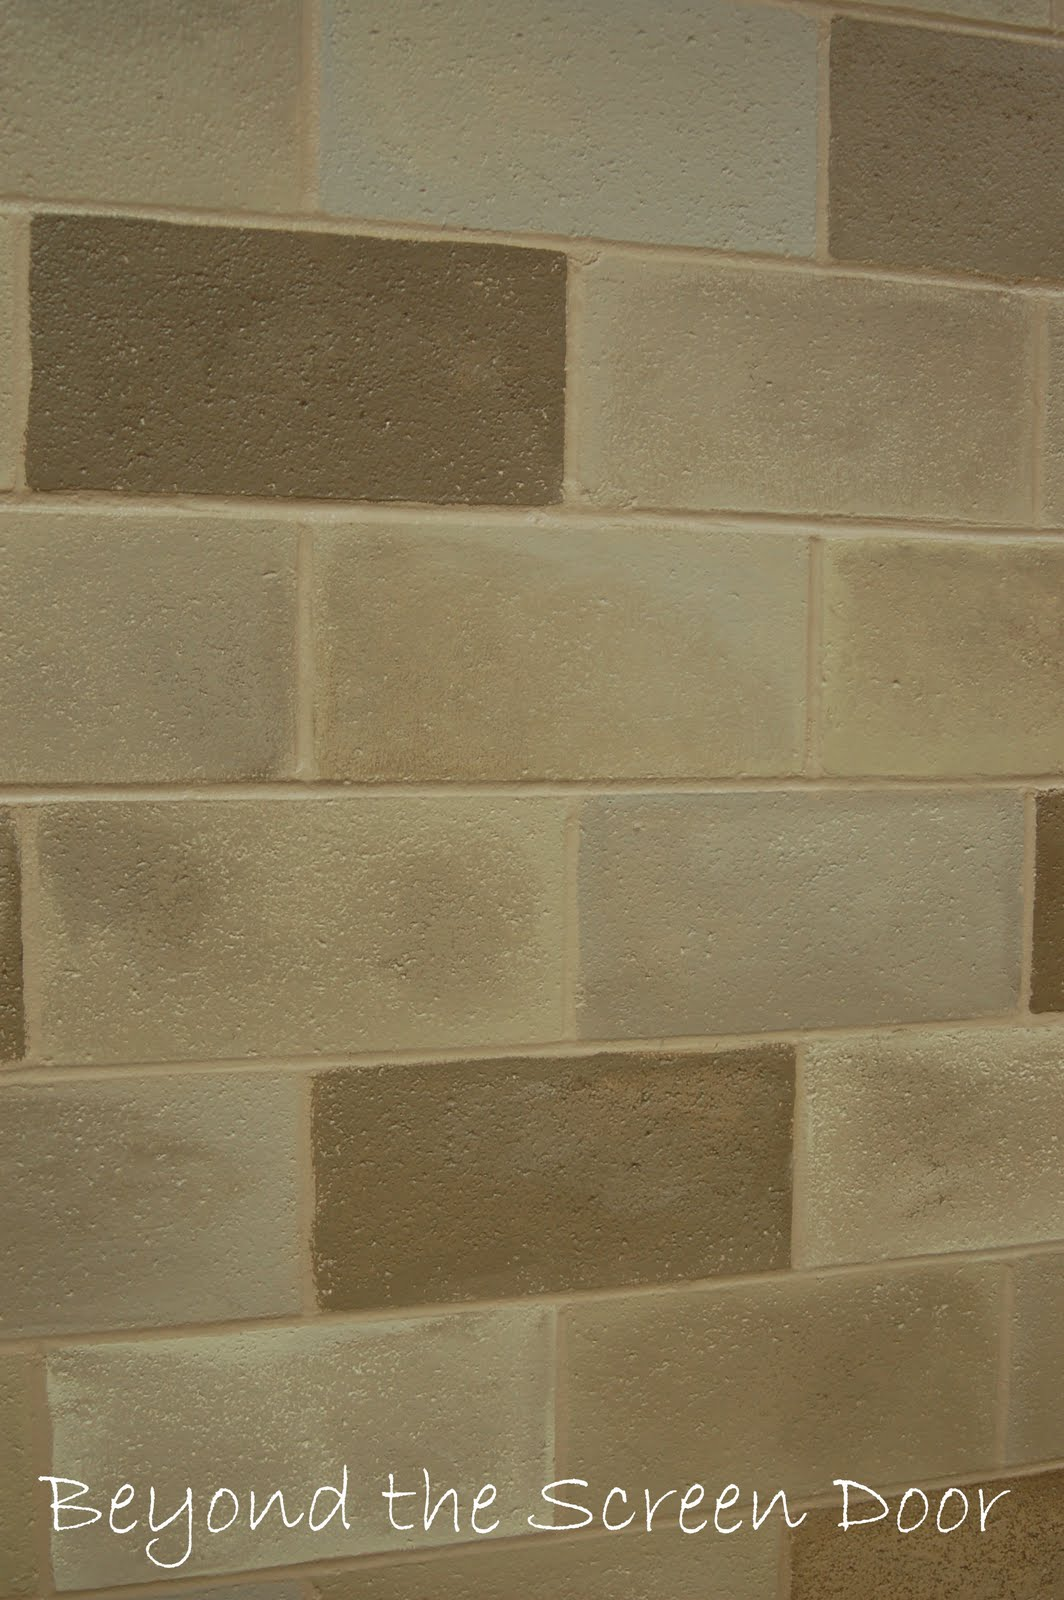 How to Paint a Concrete Wall to Look Like Stone - Sonya ...